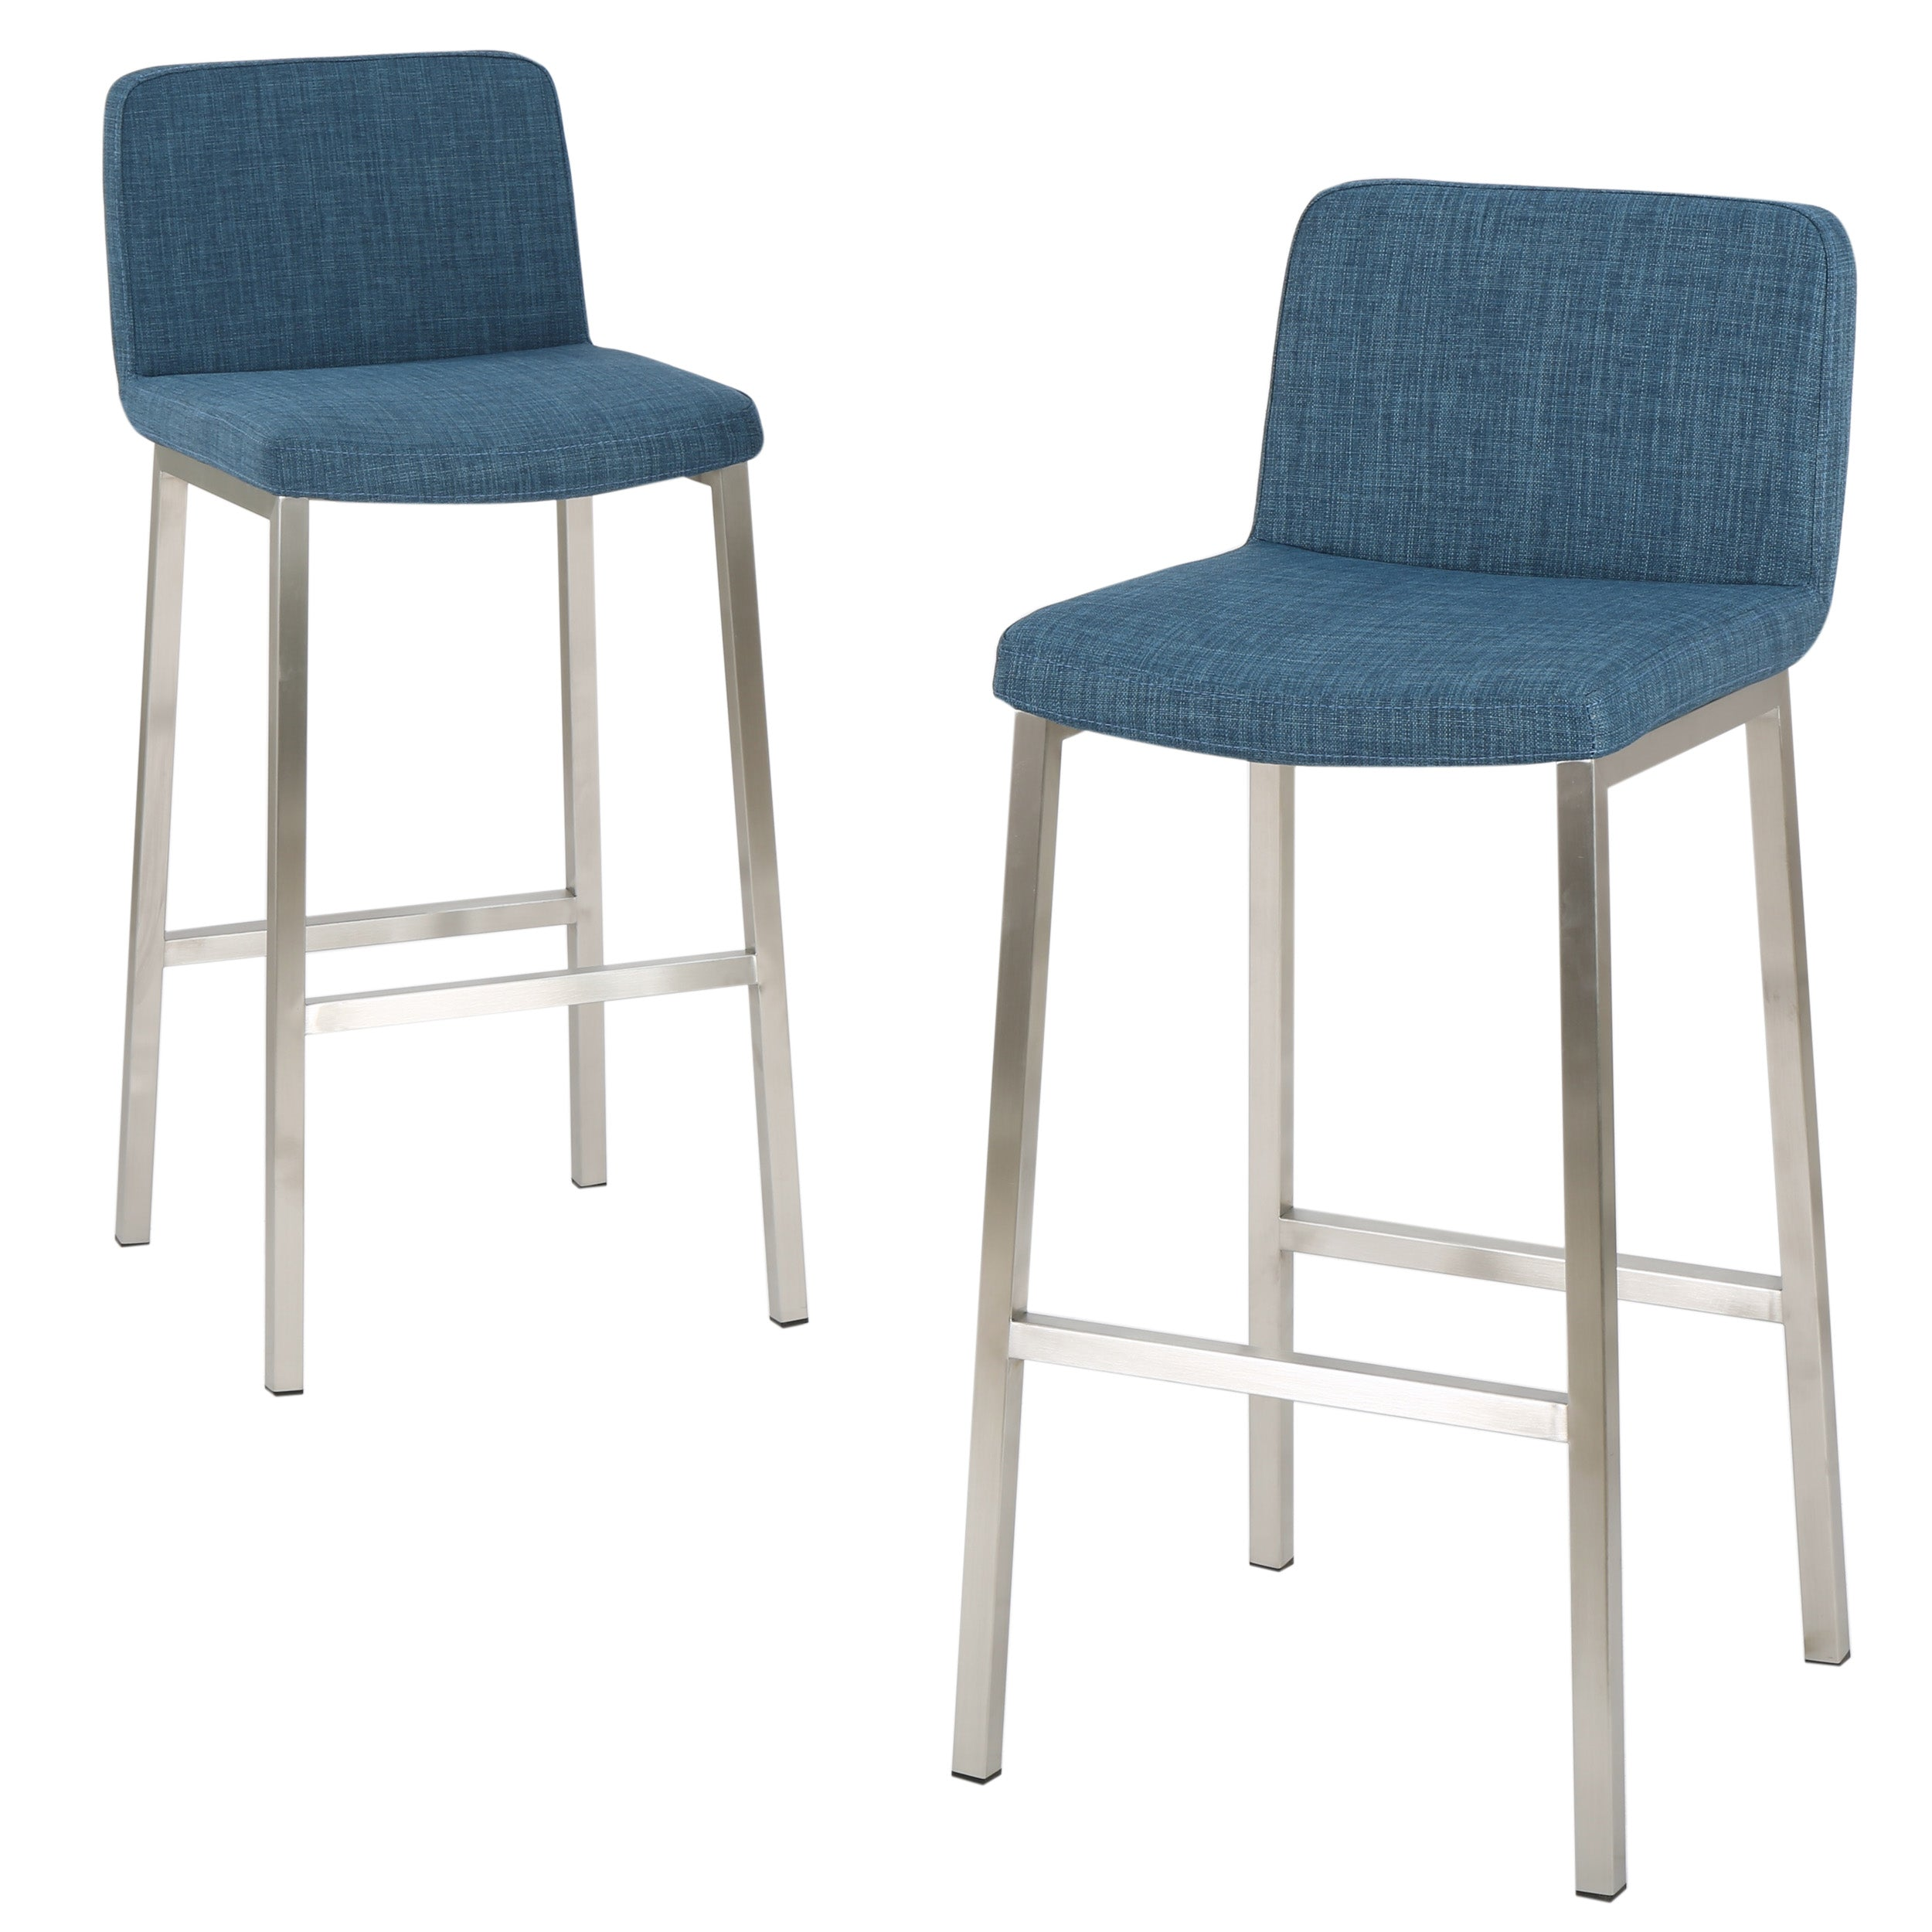 31 Inch Fantasia Fabric Barstool Set of 2 Default Title